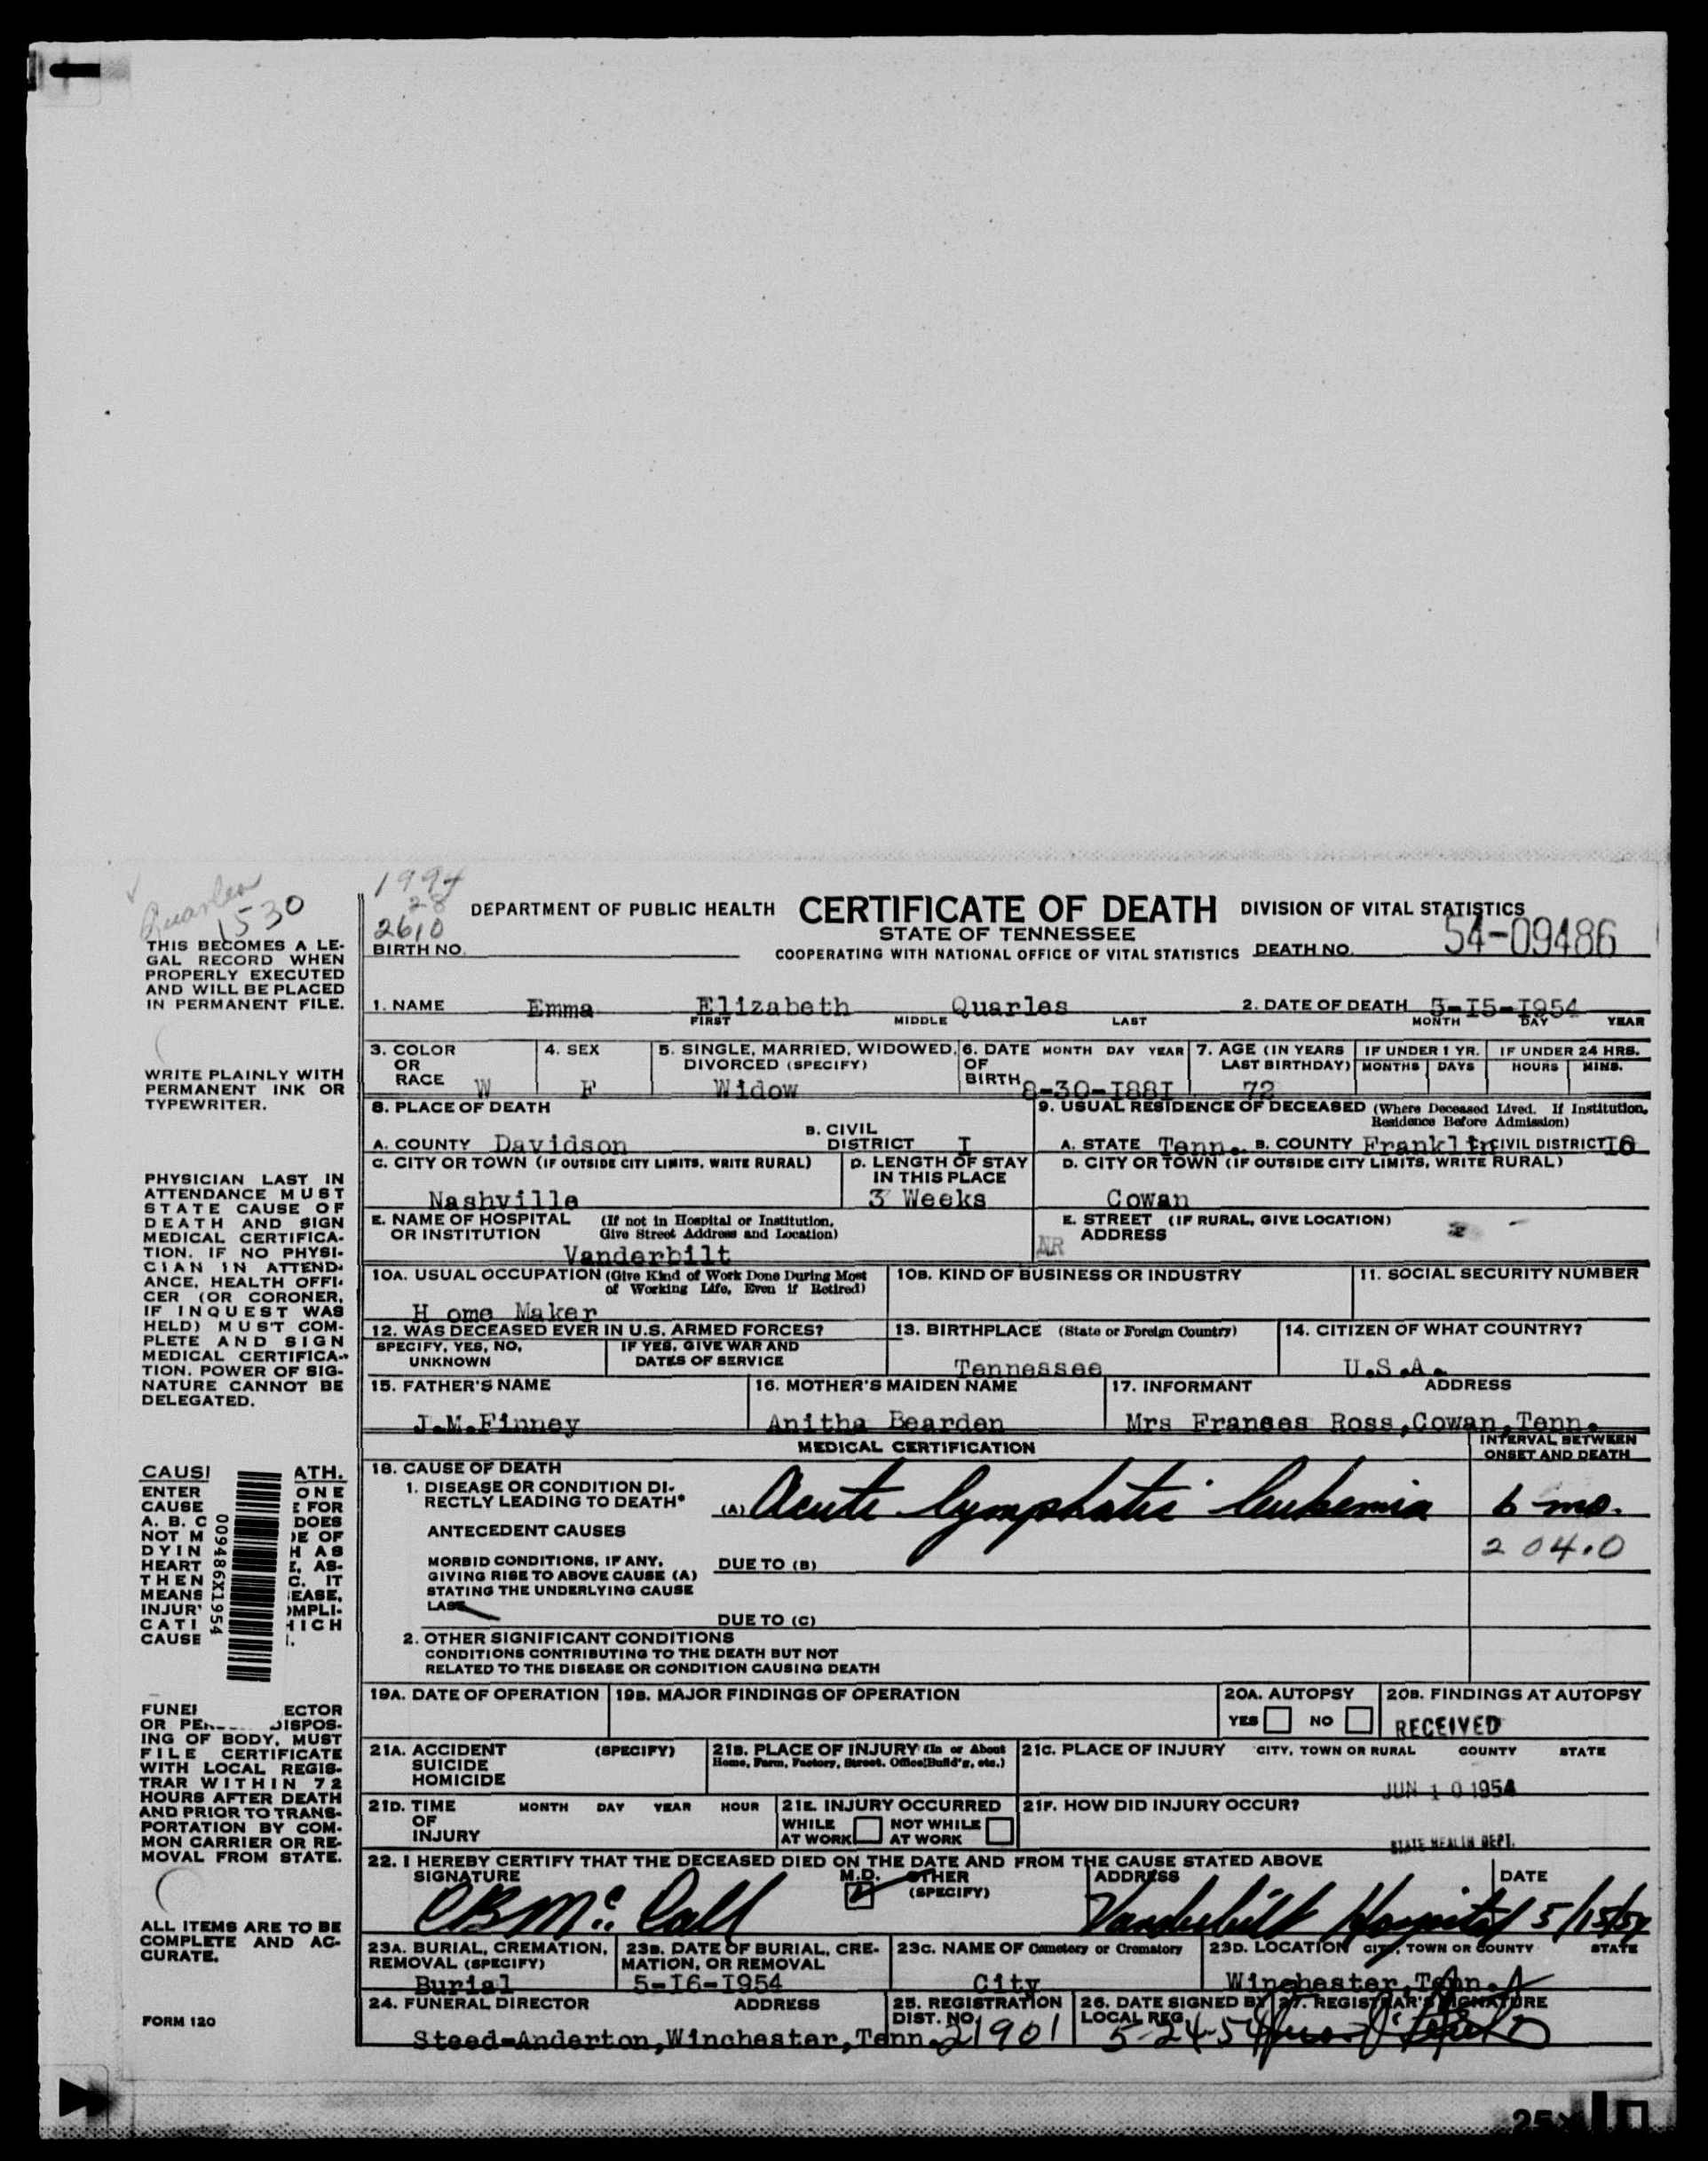 Documents 1954 death certificate nashville davidson county click and drag to move within the image 1954 death certificate xflitez Gallery